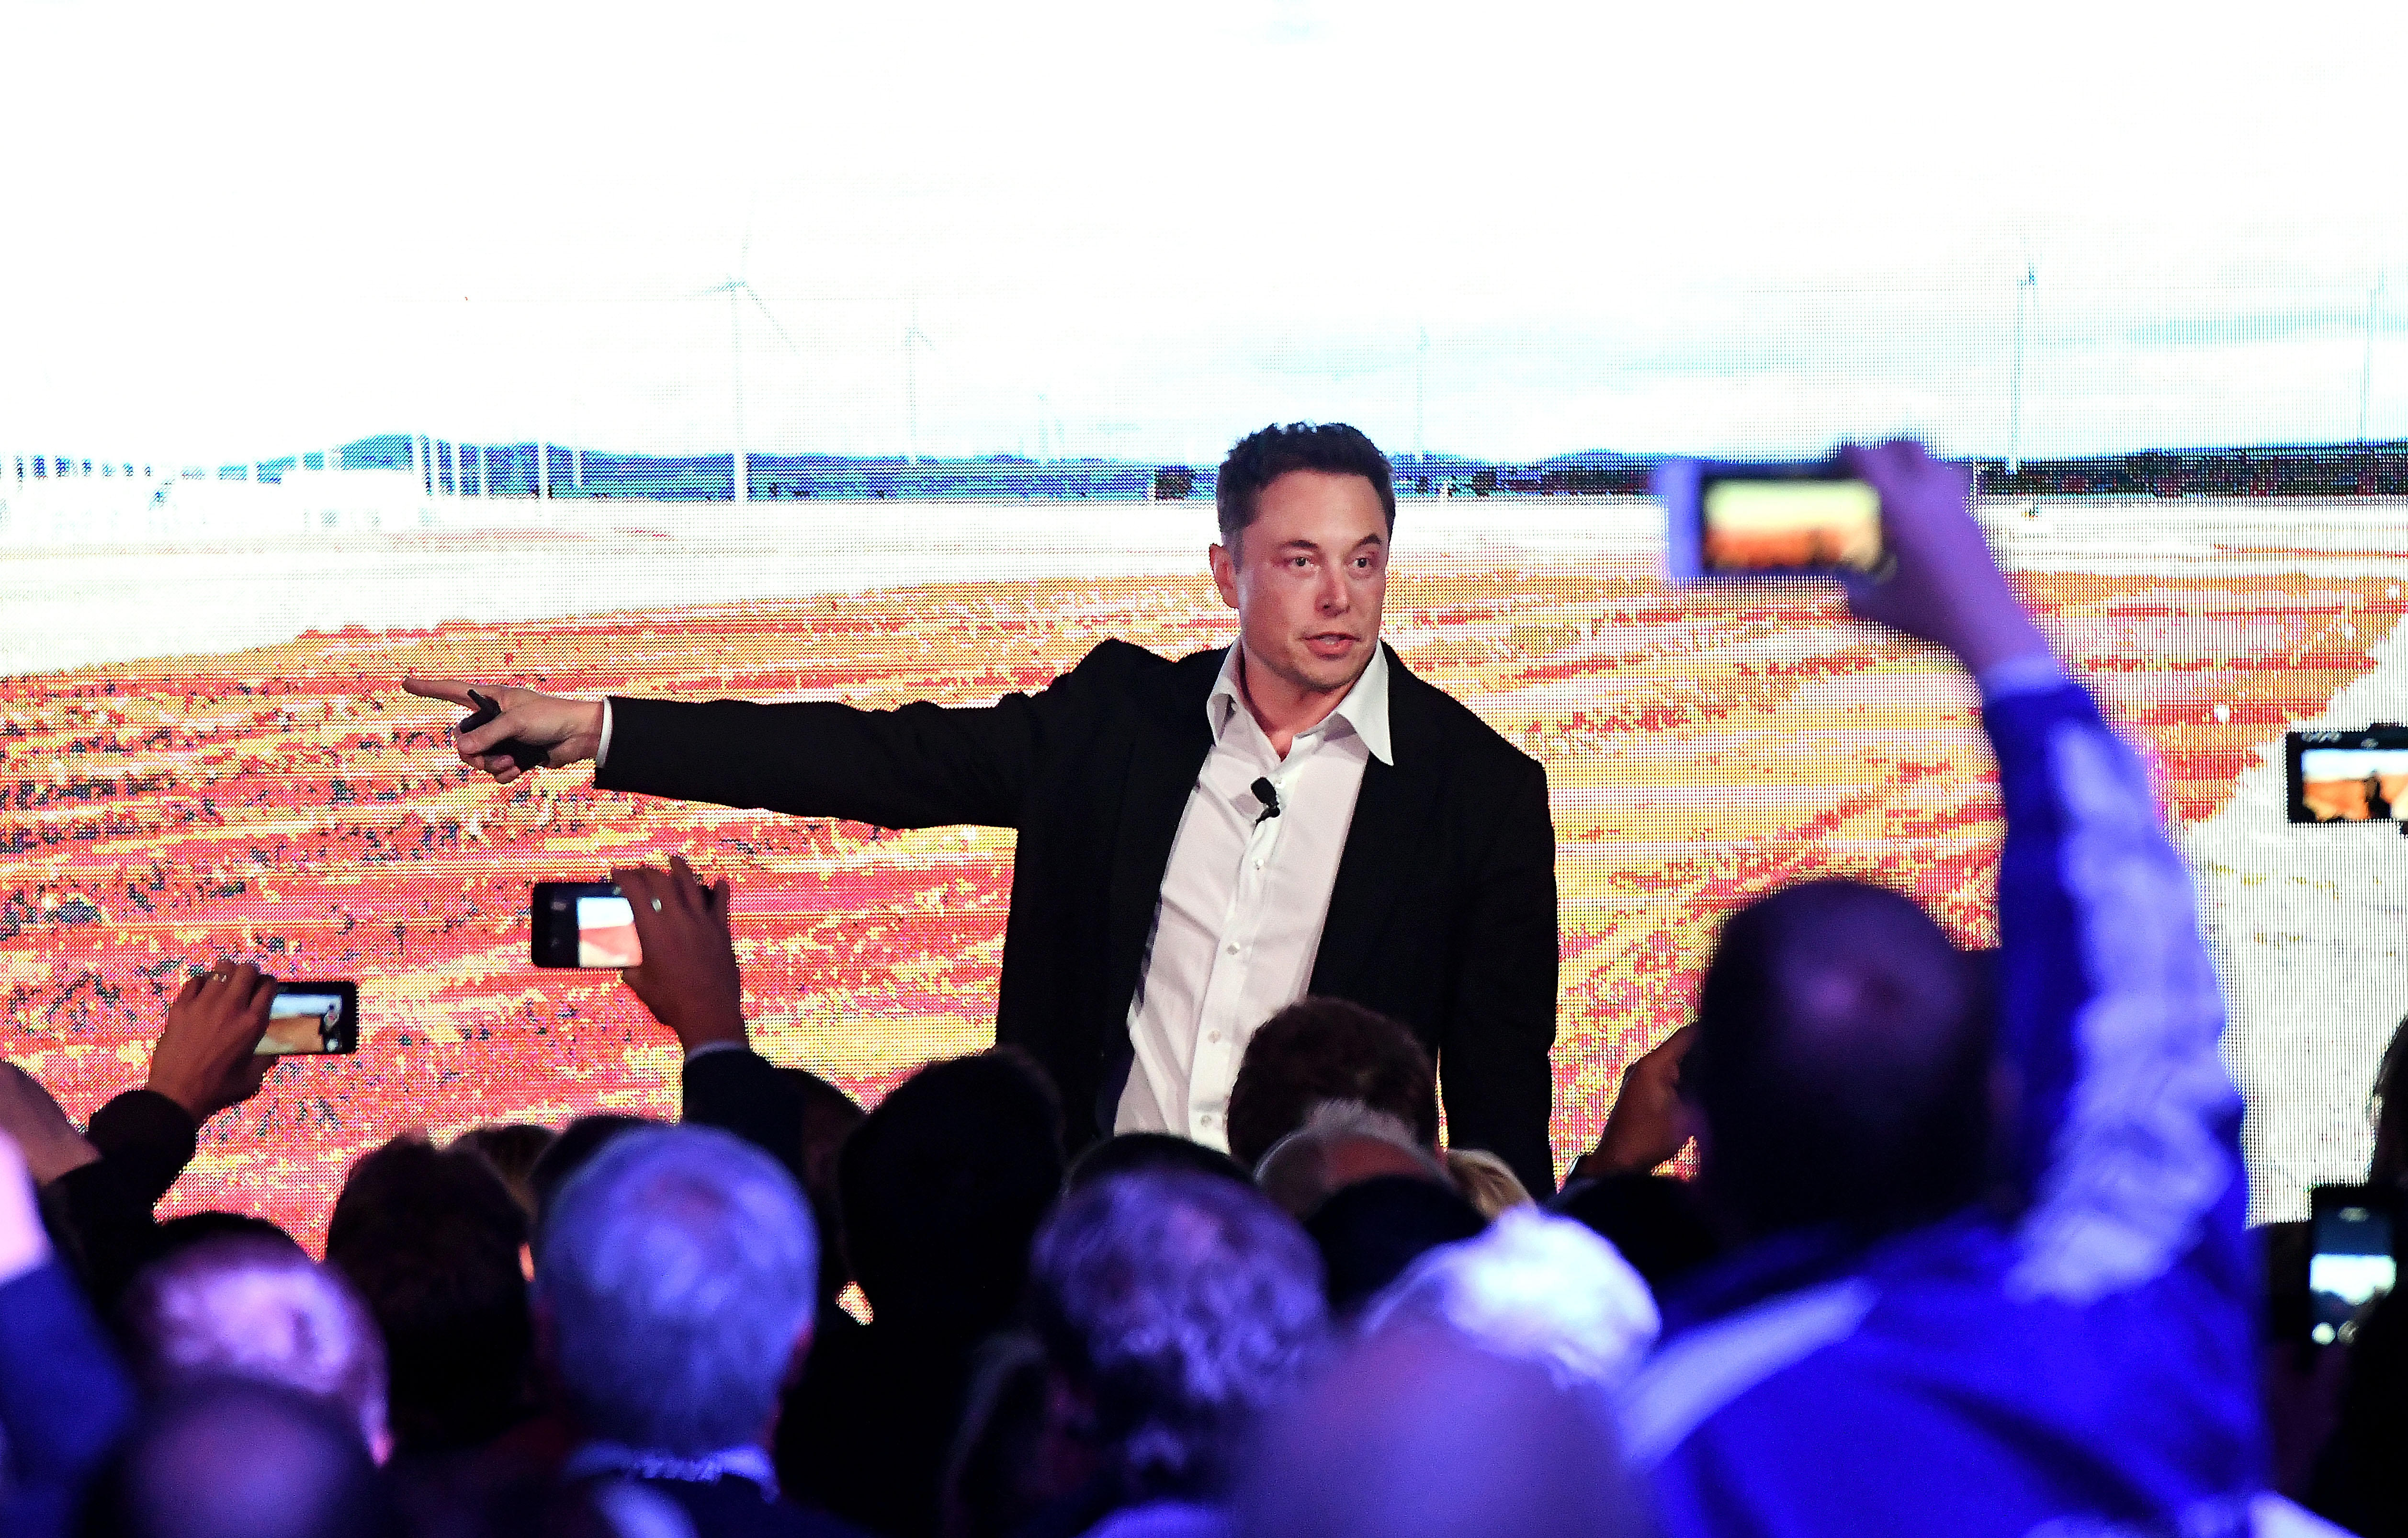 Tesla Launches Powerpack Project In South Australia